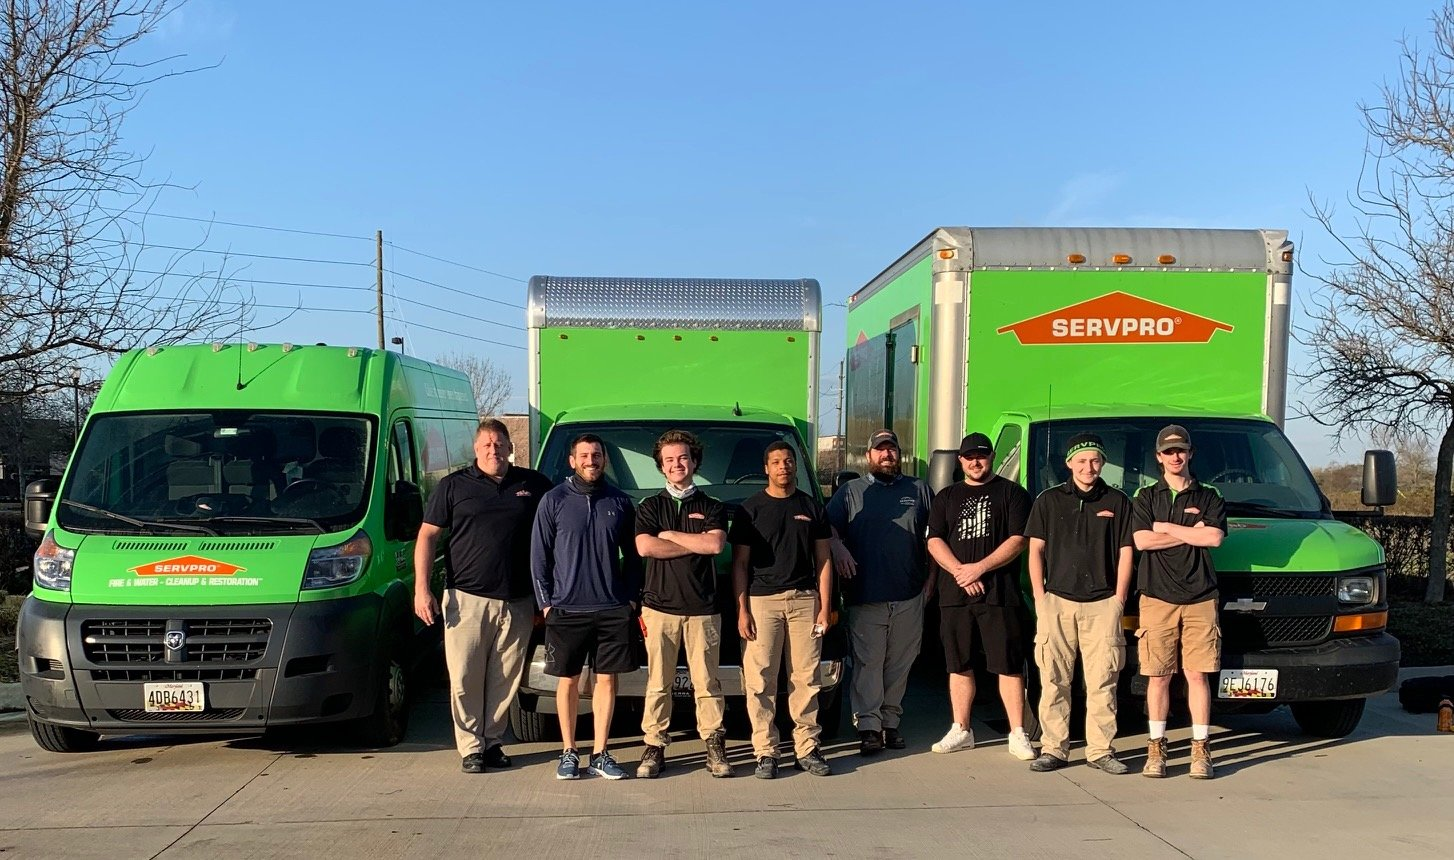 A SERVPRO of Glen Burnie team traveled to Houston, Texas, from February 25 to March 12 to help after a winter storm wrecked the area.